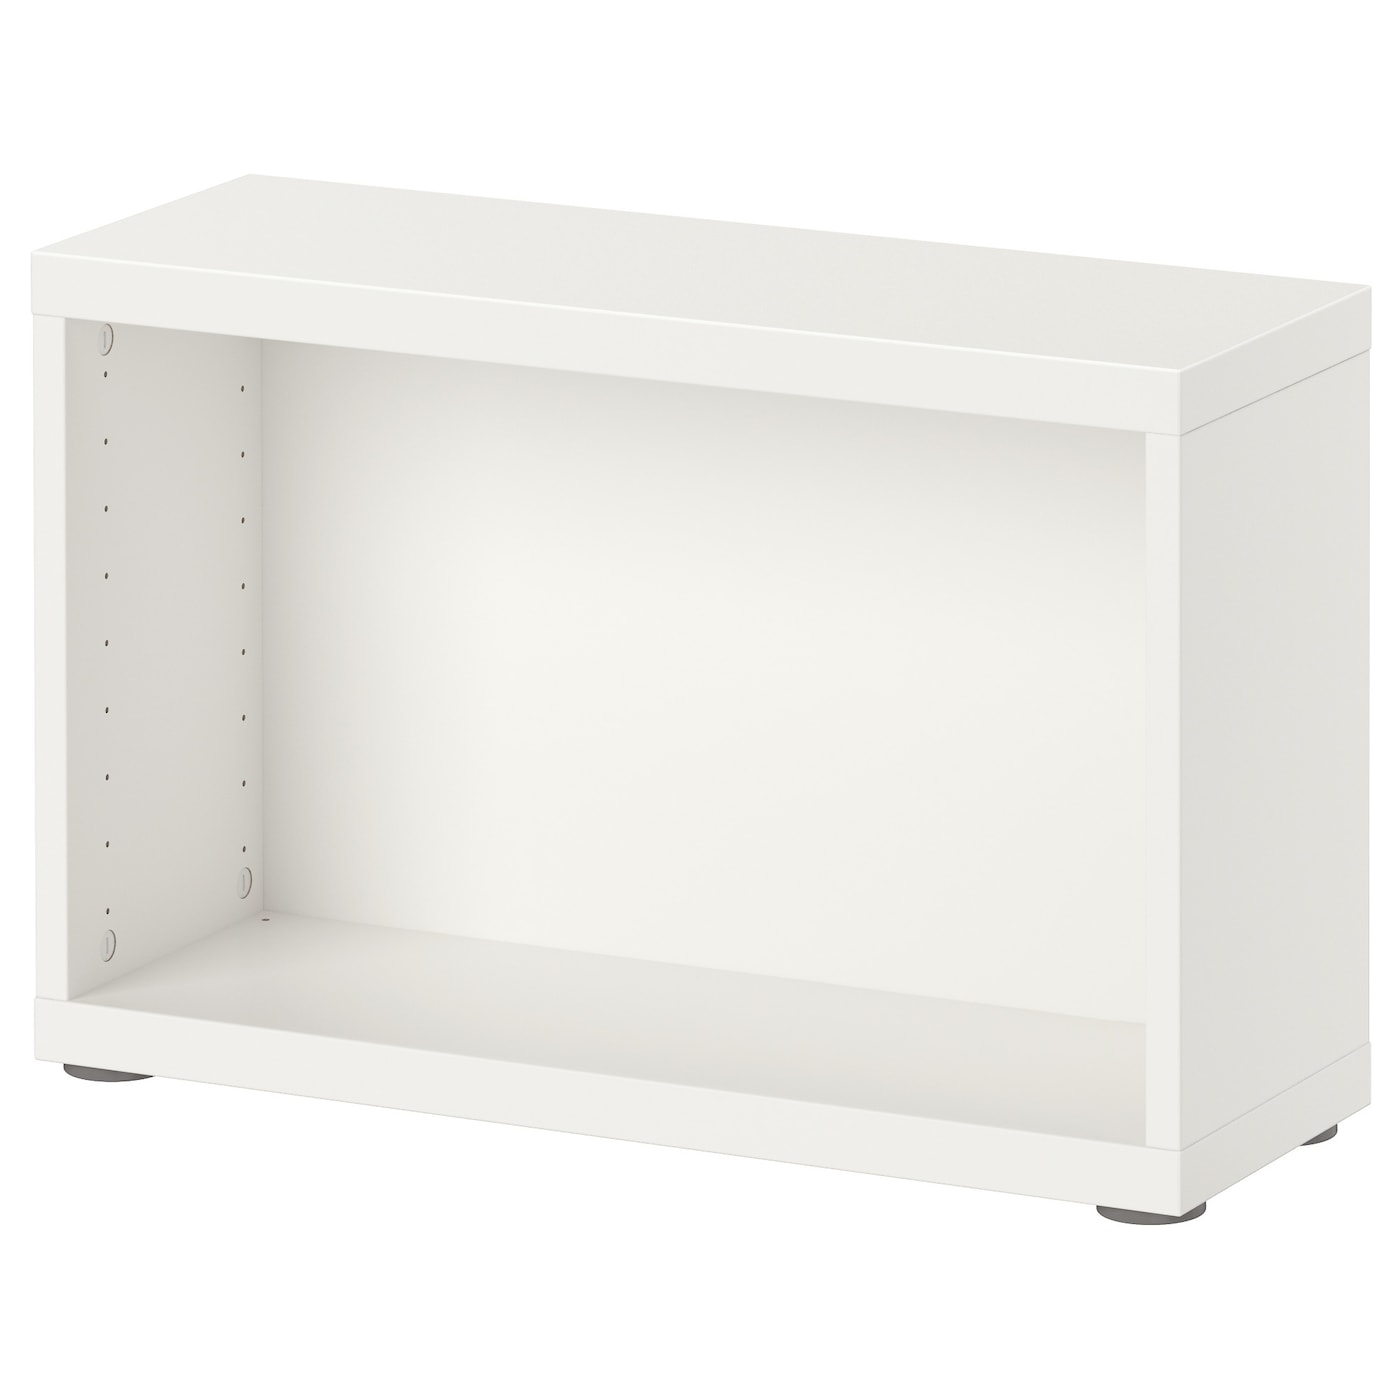 IKEA BESTÅ frame If you want to organise inside you can complement with BESTÅ interior fittings.